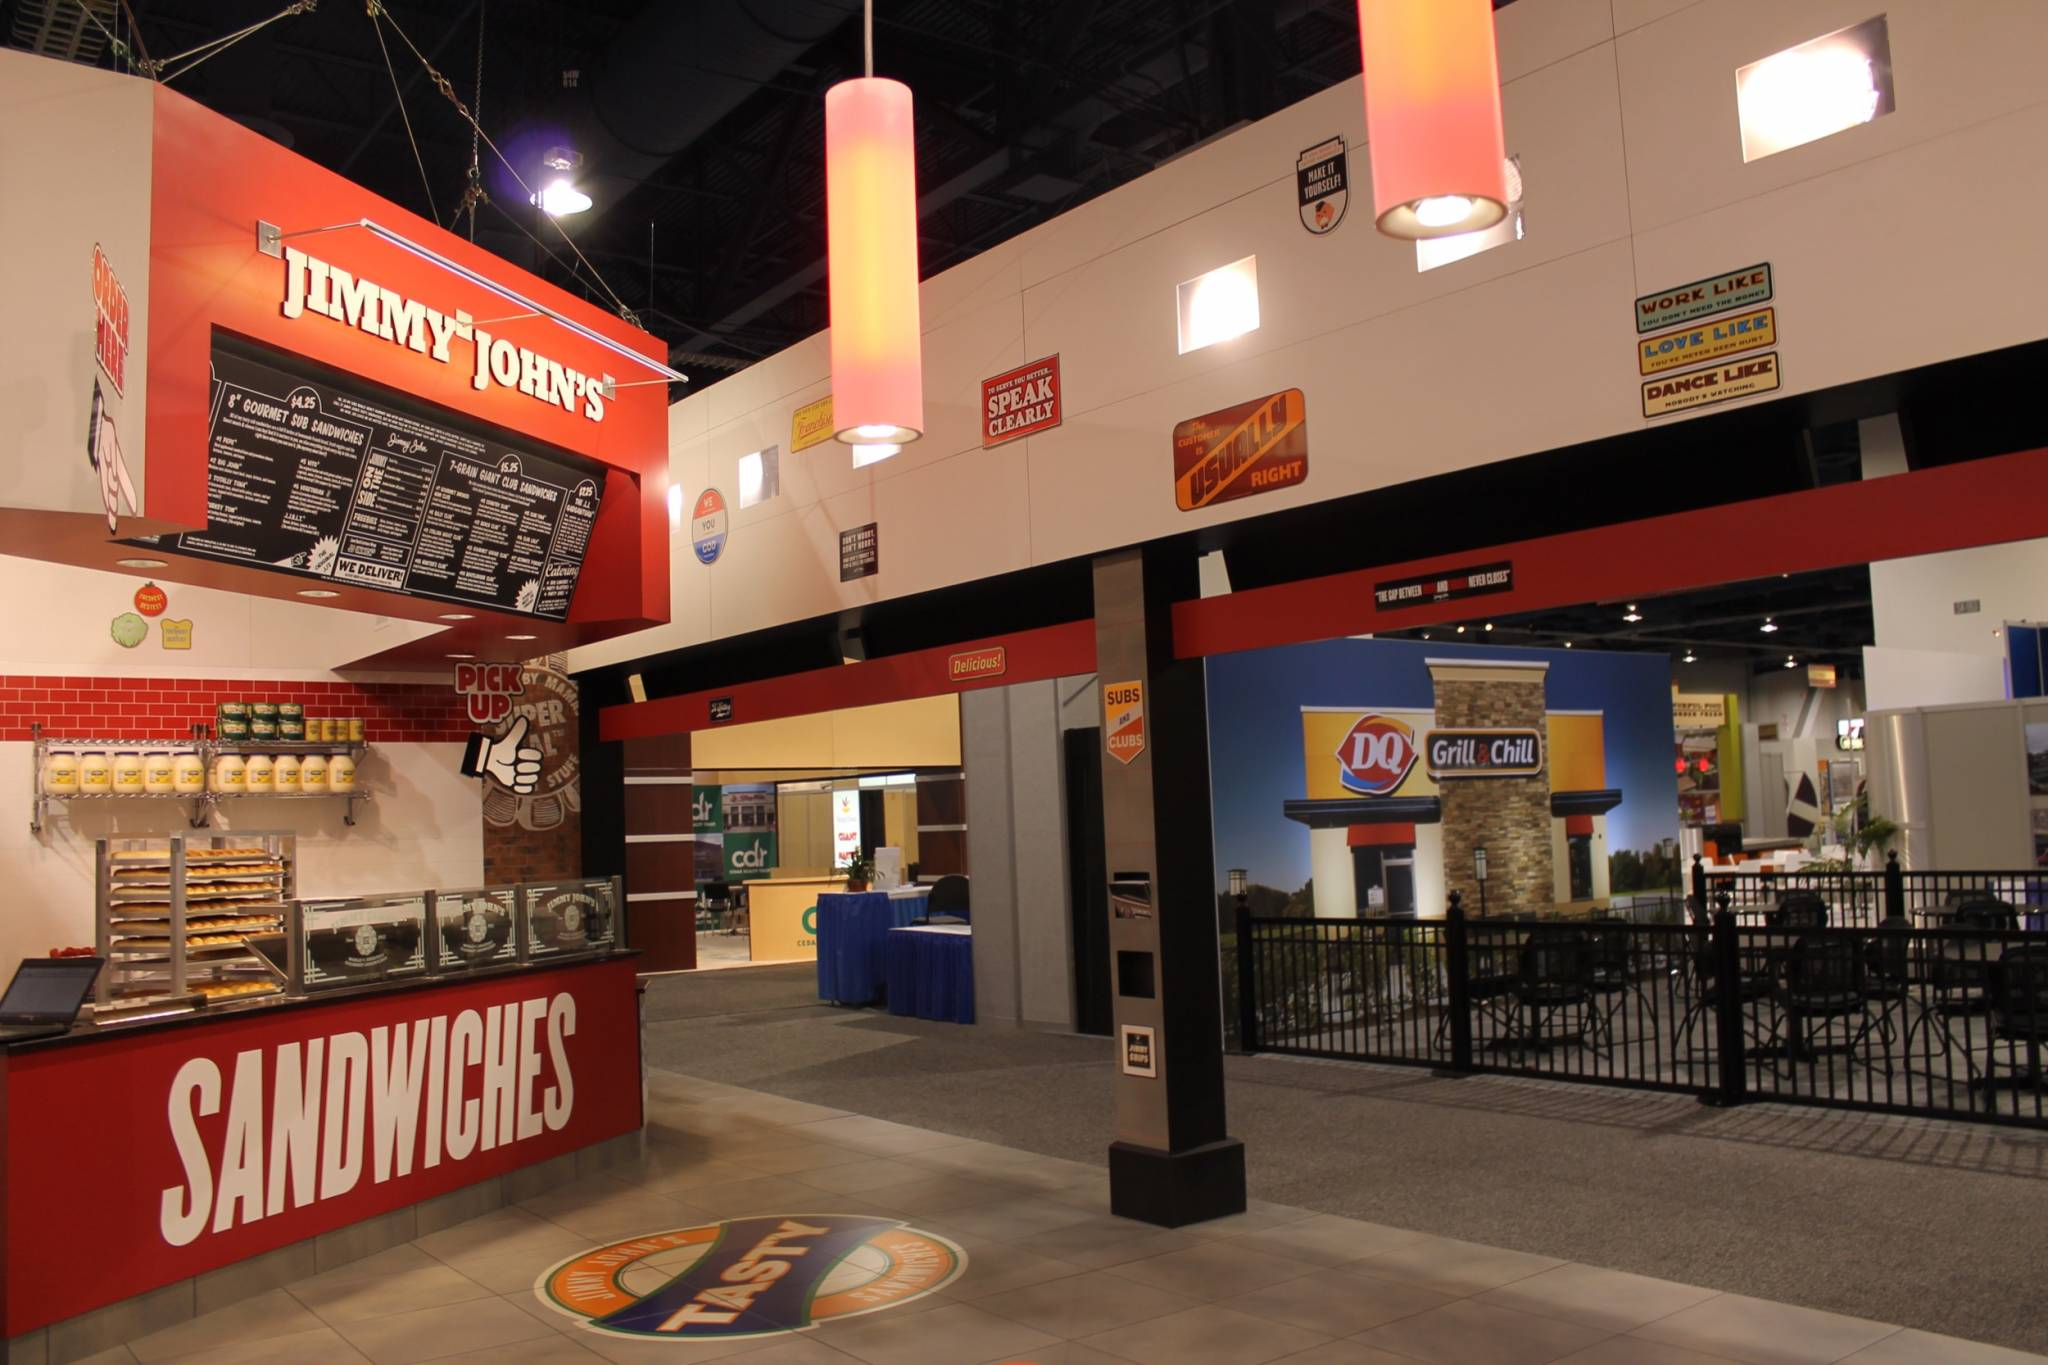 Shop Lighting Fixtures Led Jimmy John's Recon '13 - Fine Design Associates